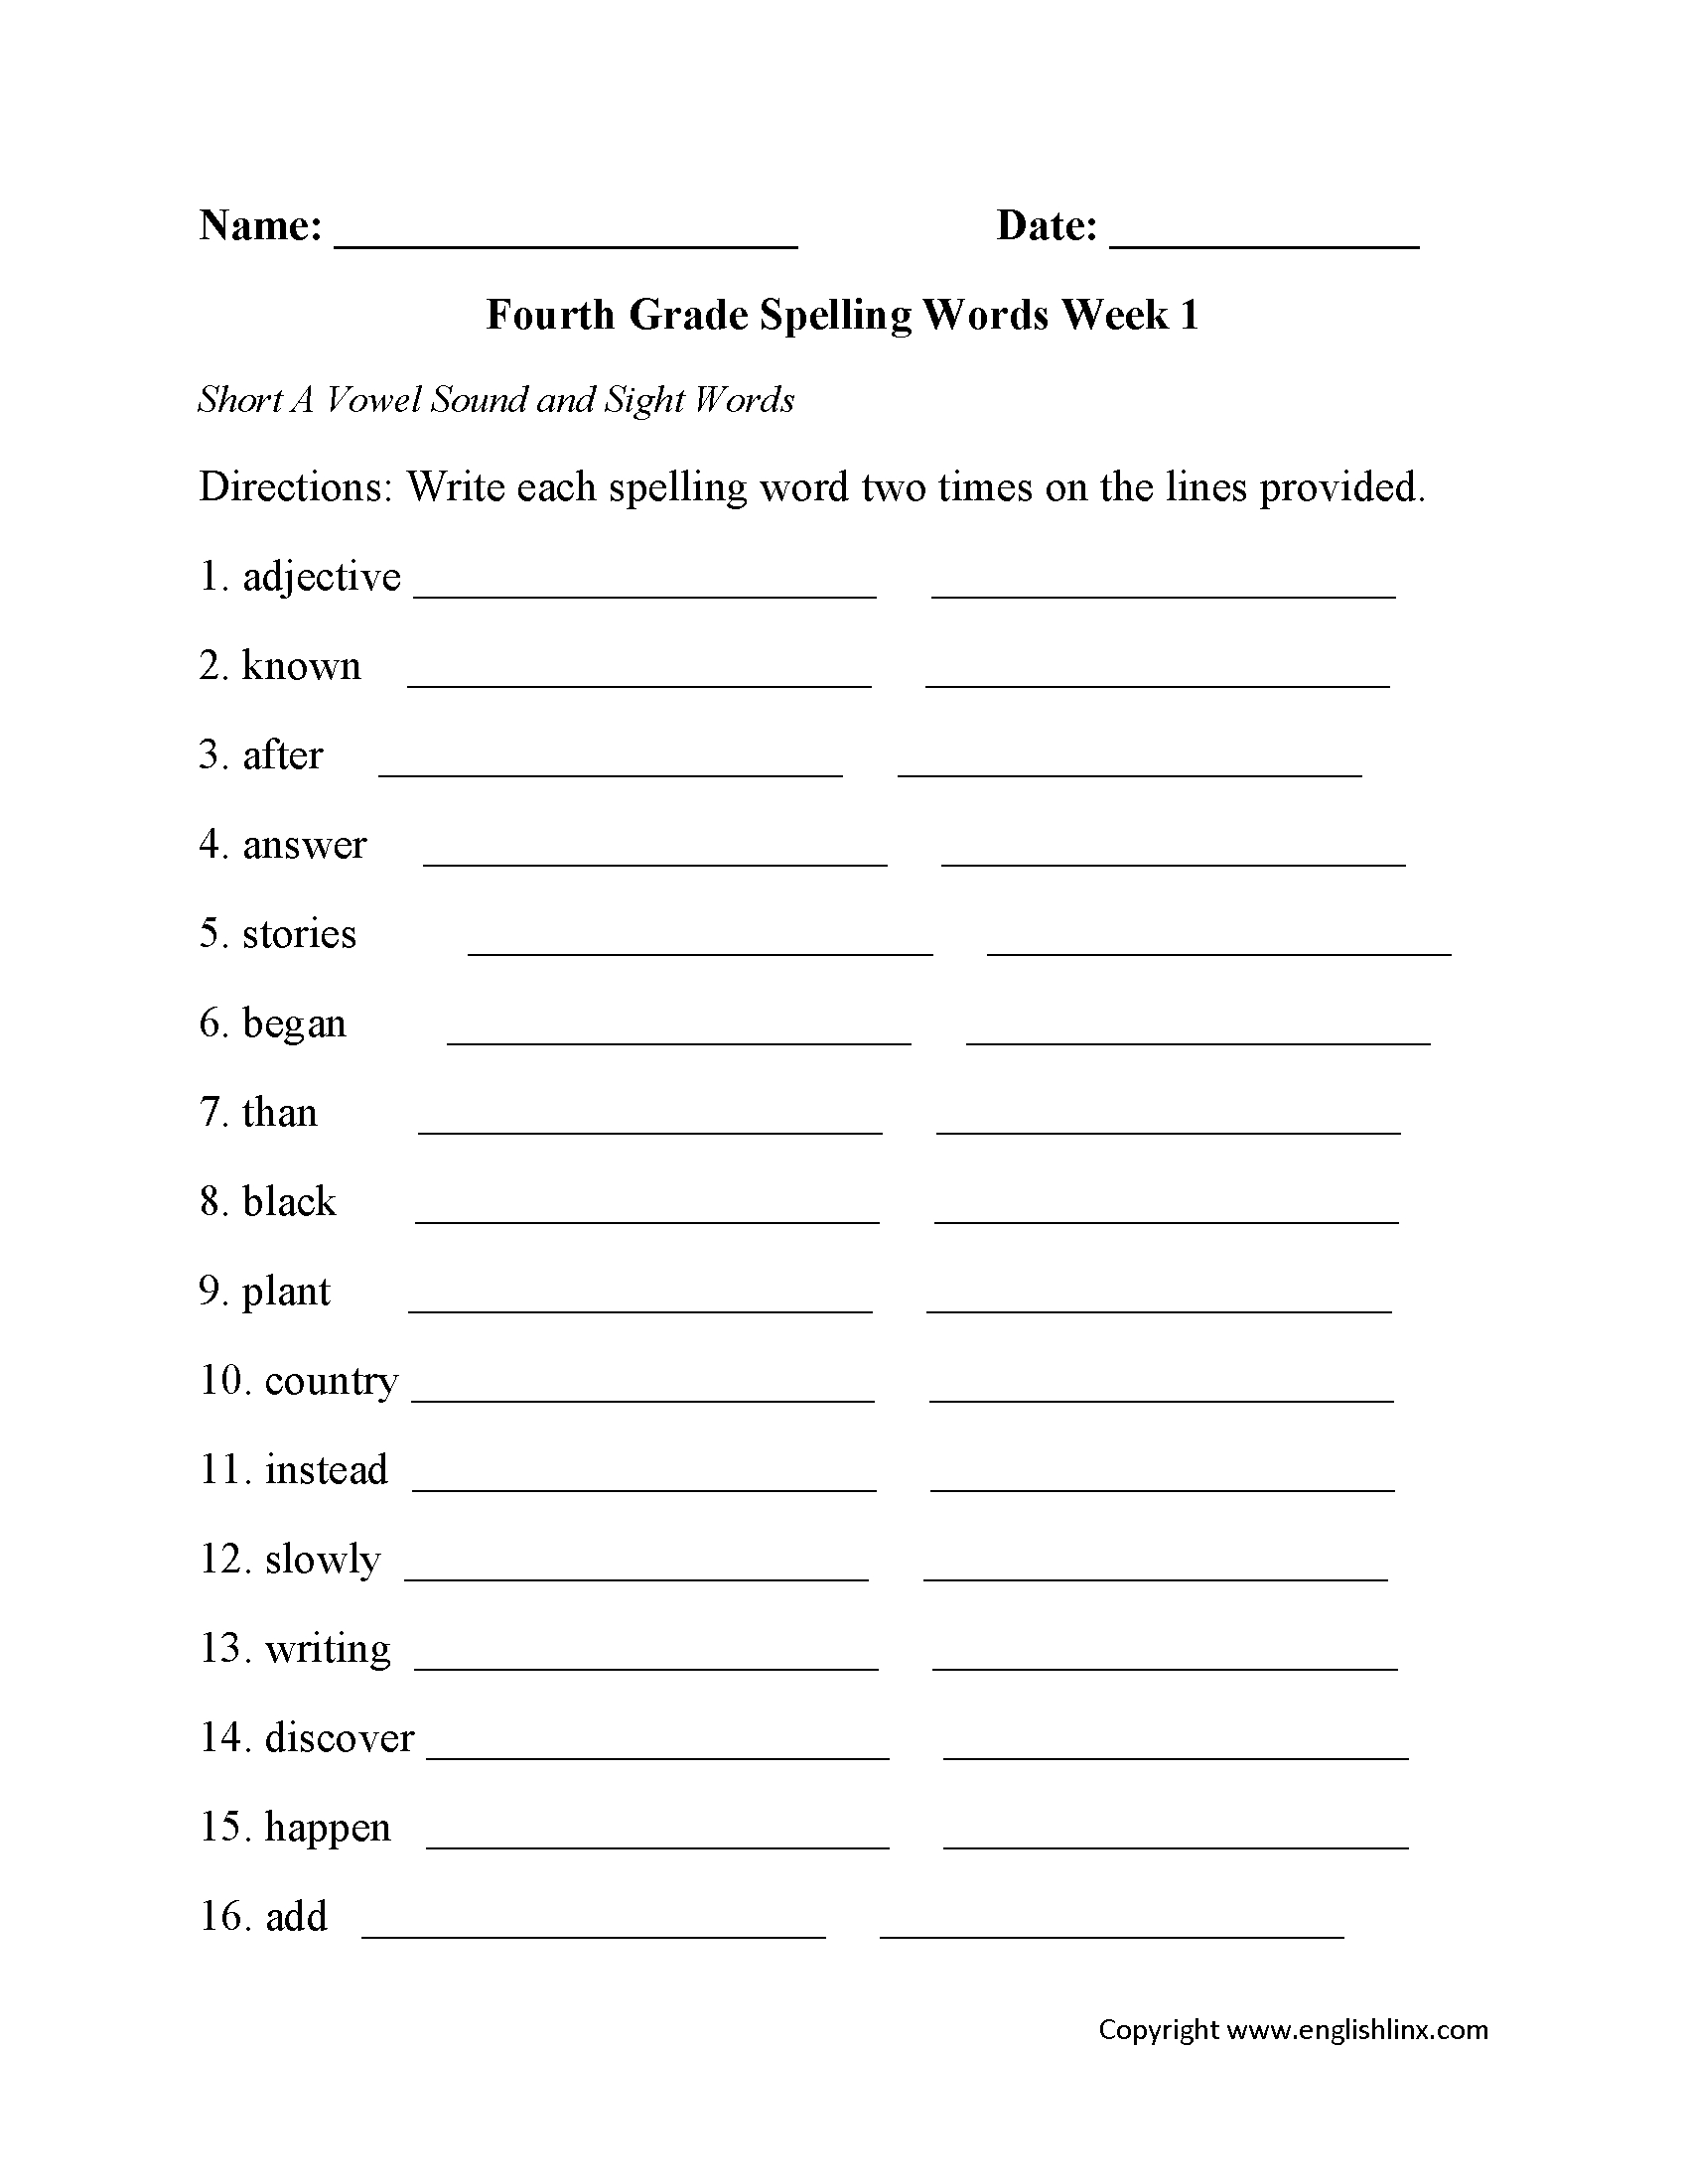 Spelling Worksheets | Fourth Grade Spelling Worksheets | Printable Spelling Worksheets